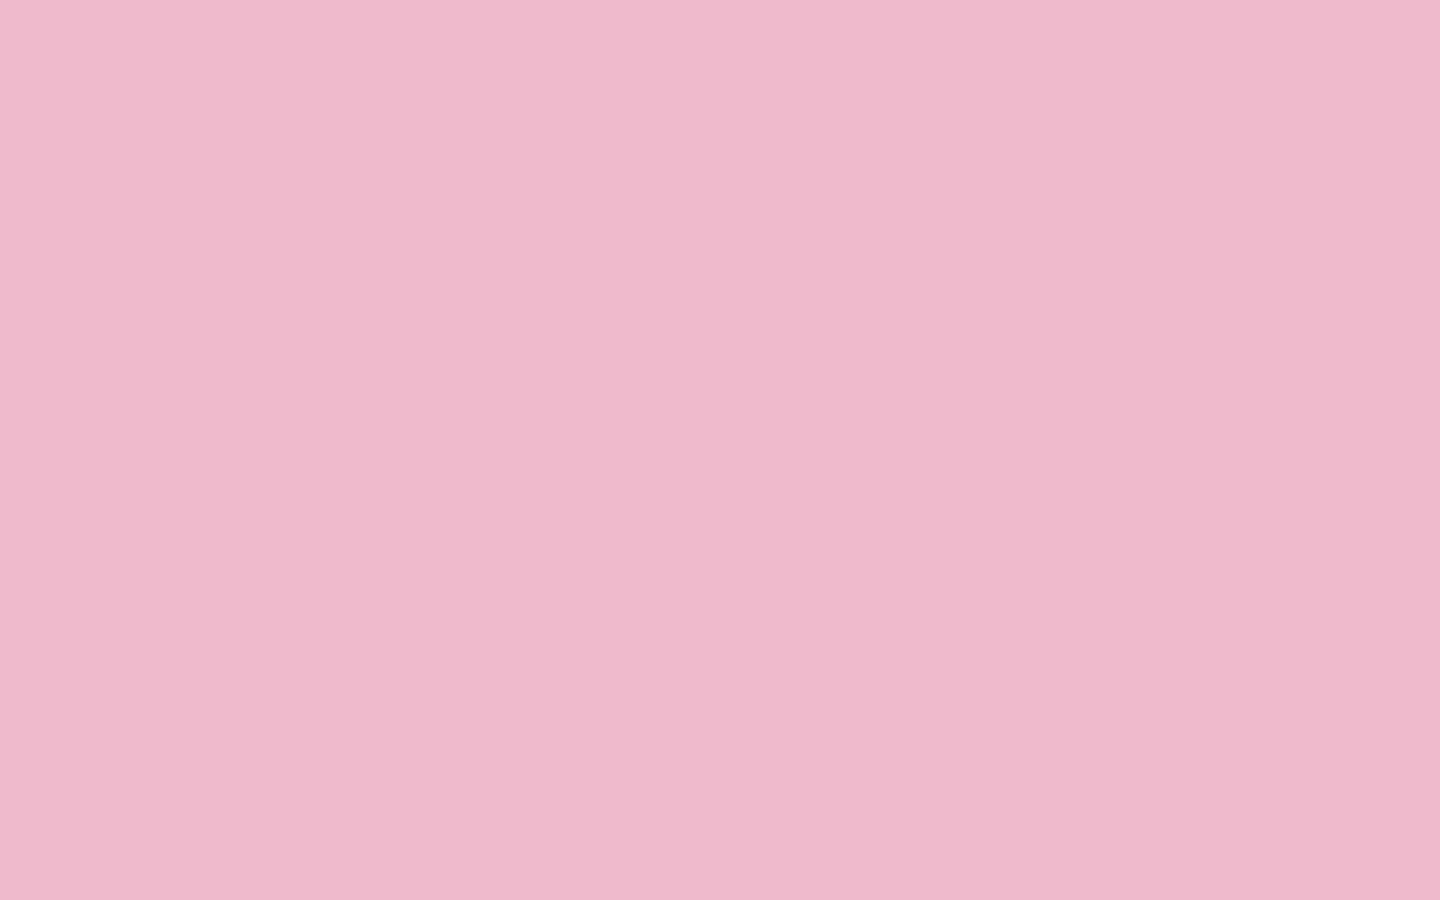 1440x900 Cameo Pink Solid Color Background